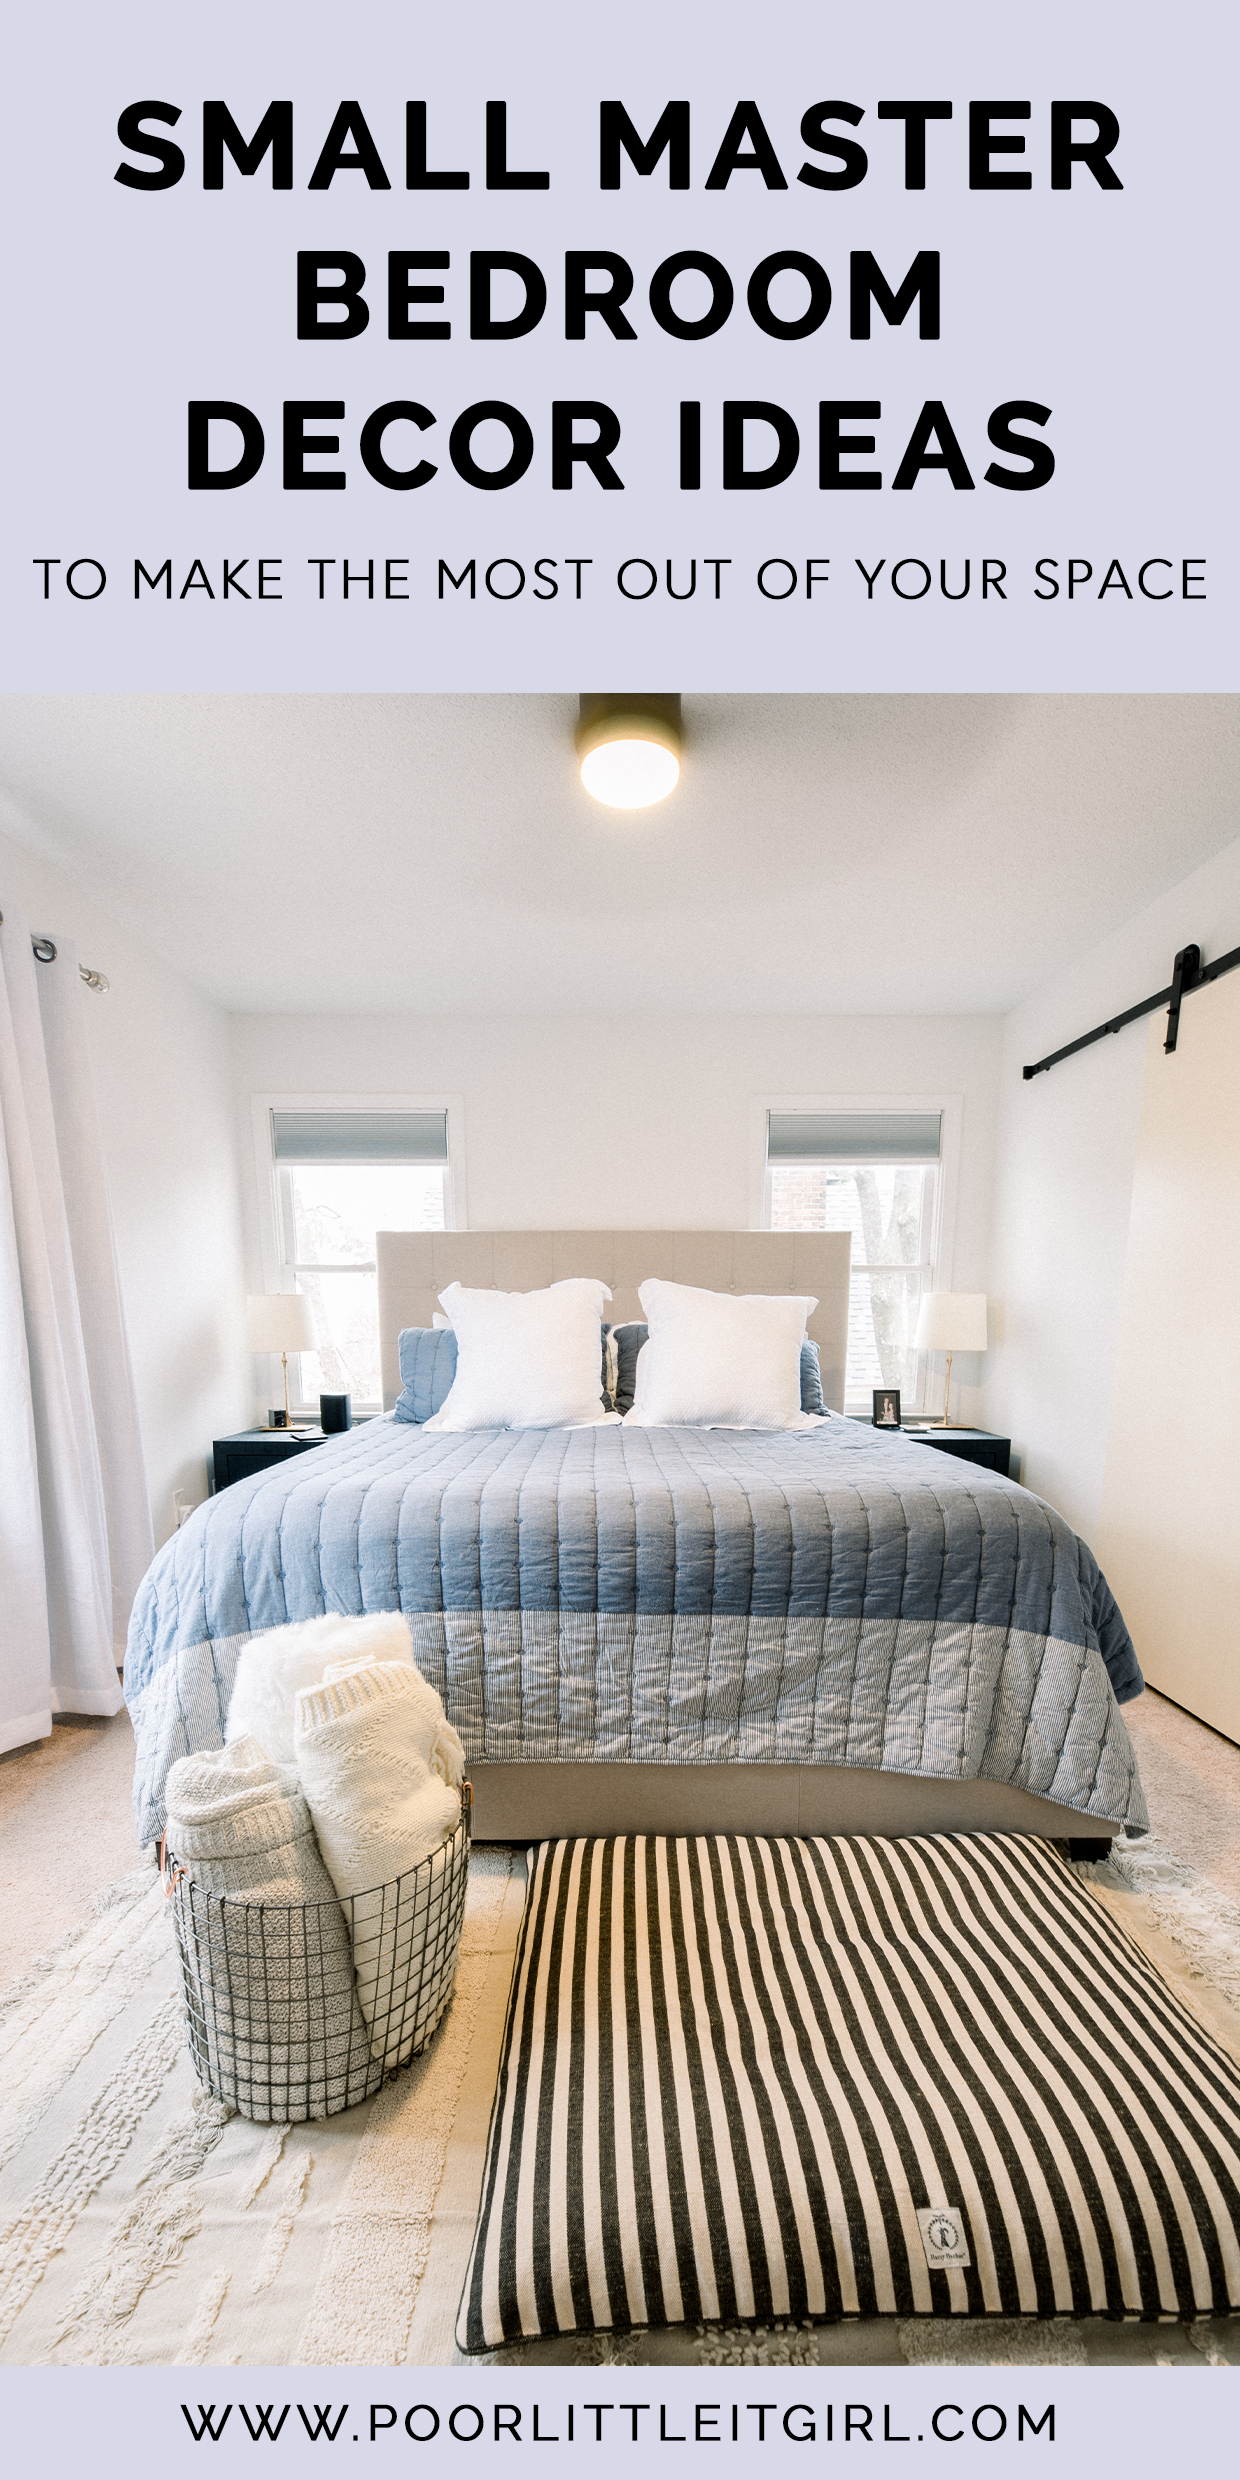 Small Master Bedroom Decor Ideas To Make The Most Out Of Your Space In 2020 Master Bedrooms Decor Small Master Bedroom Master Bedroom Renovation